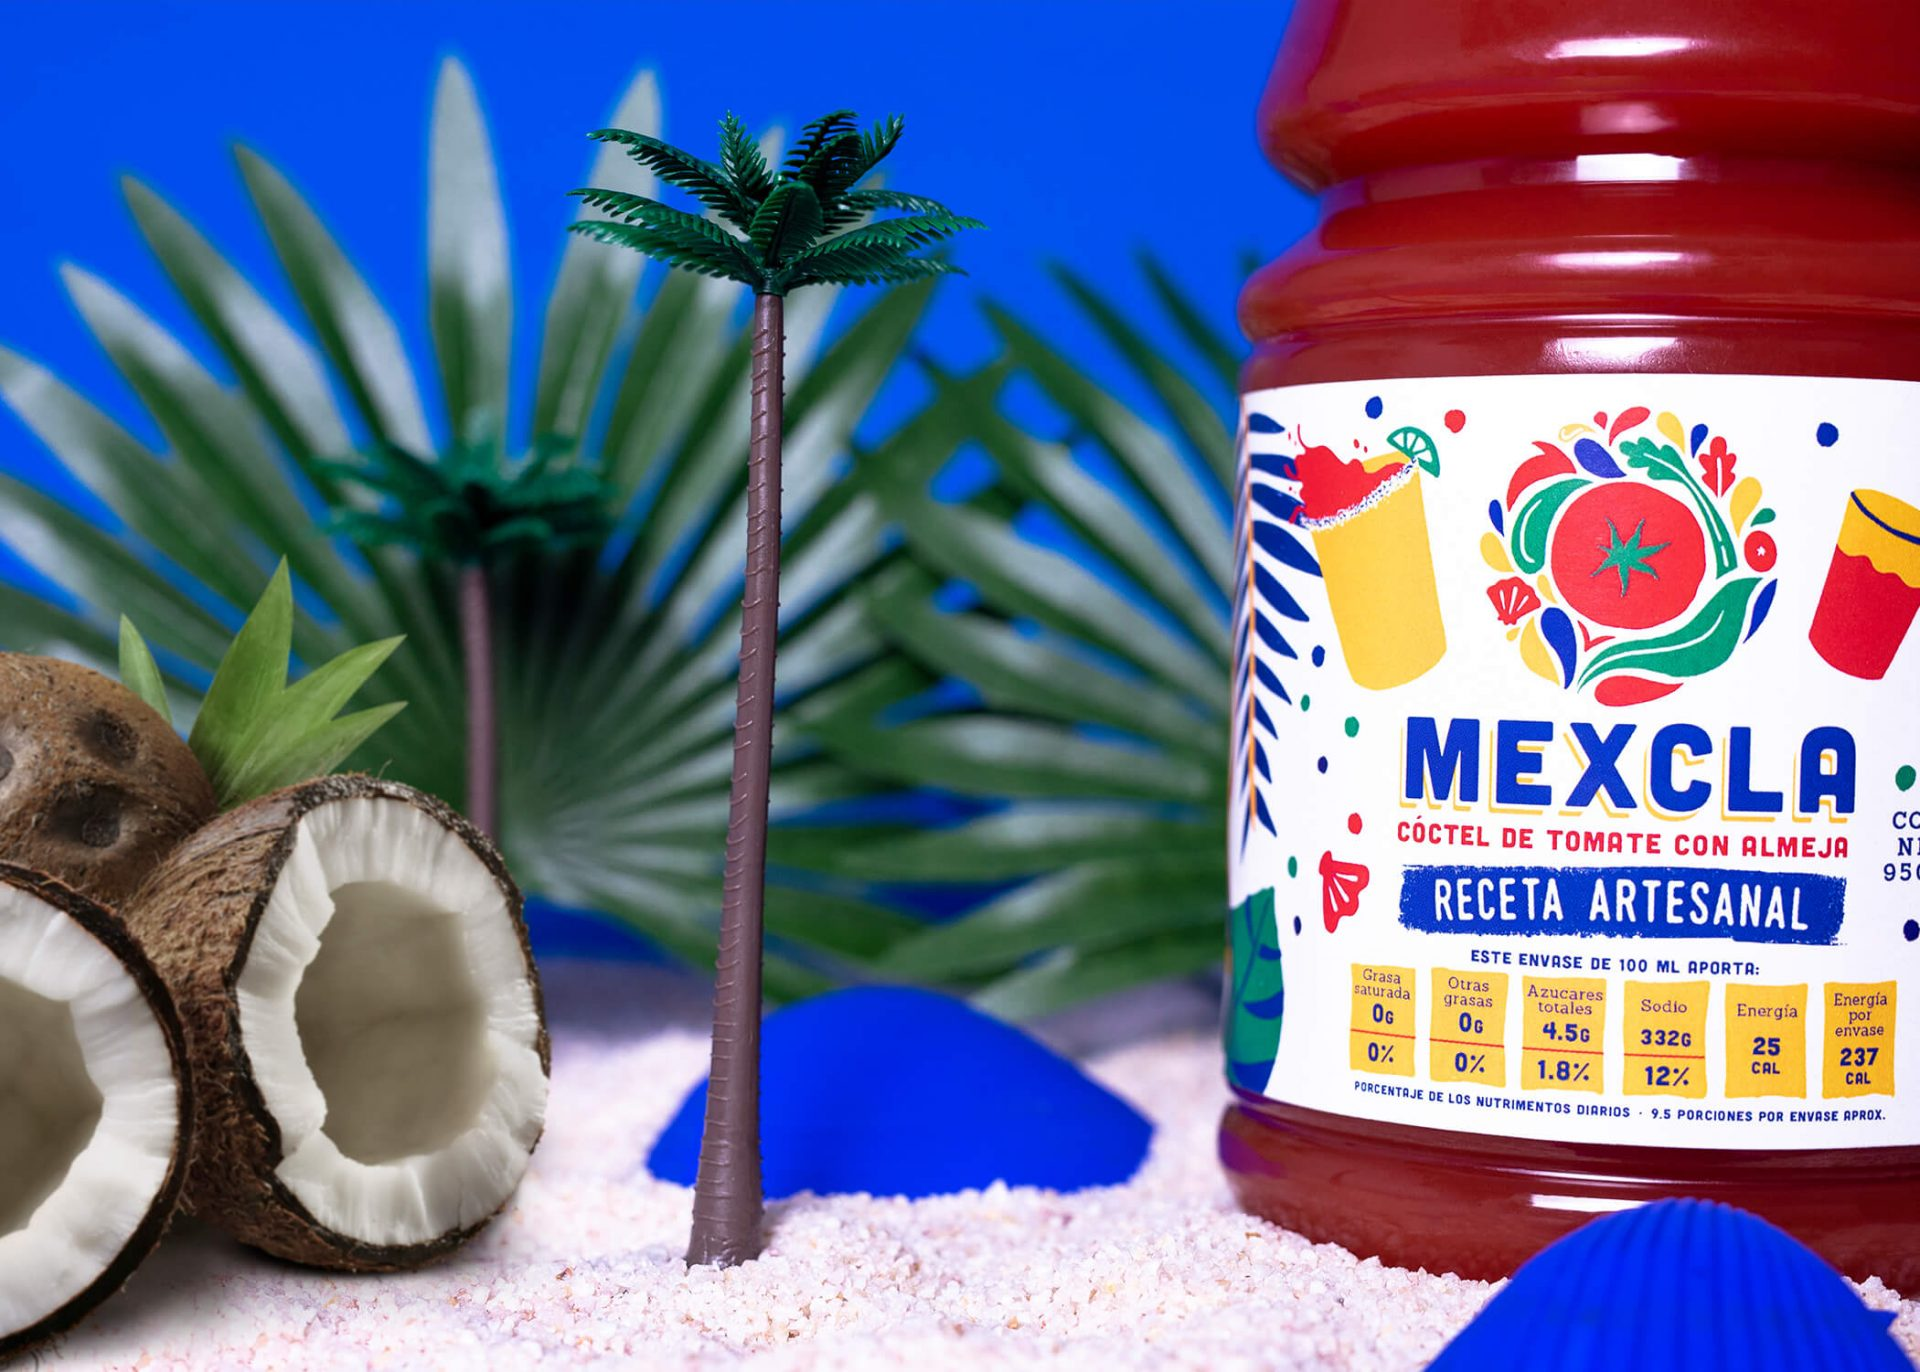 Mexcla Made by Eme Design Studio